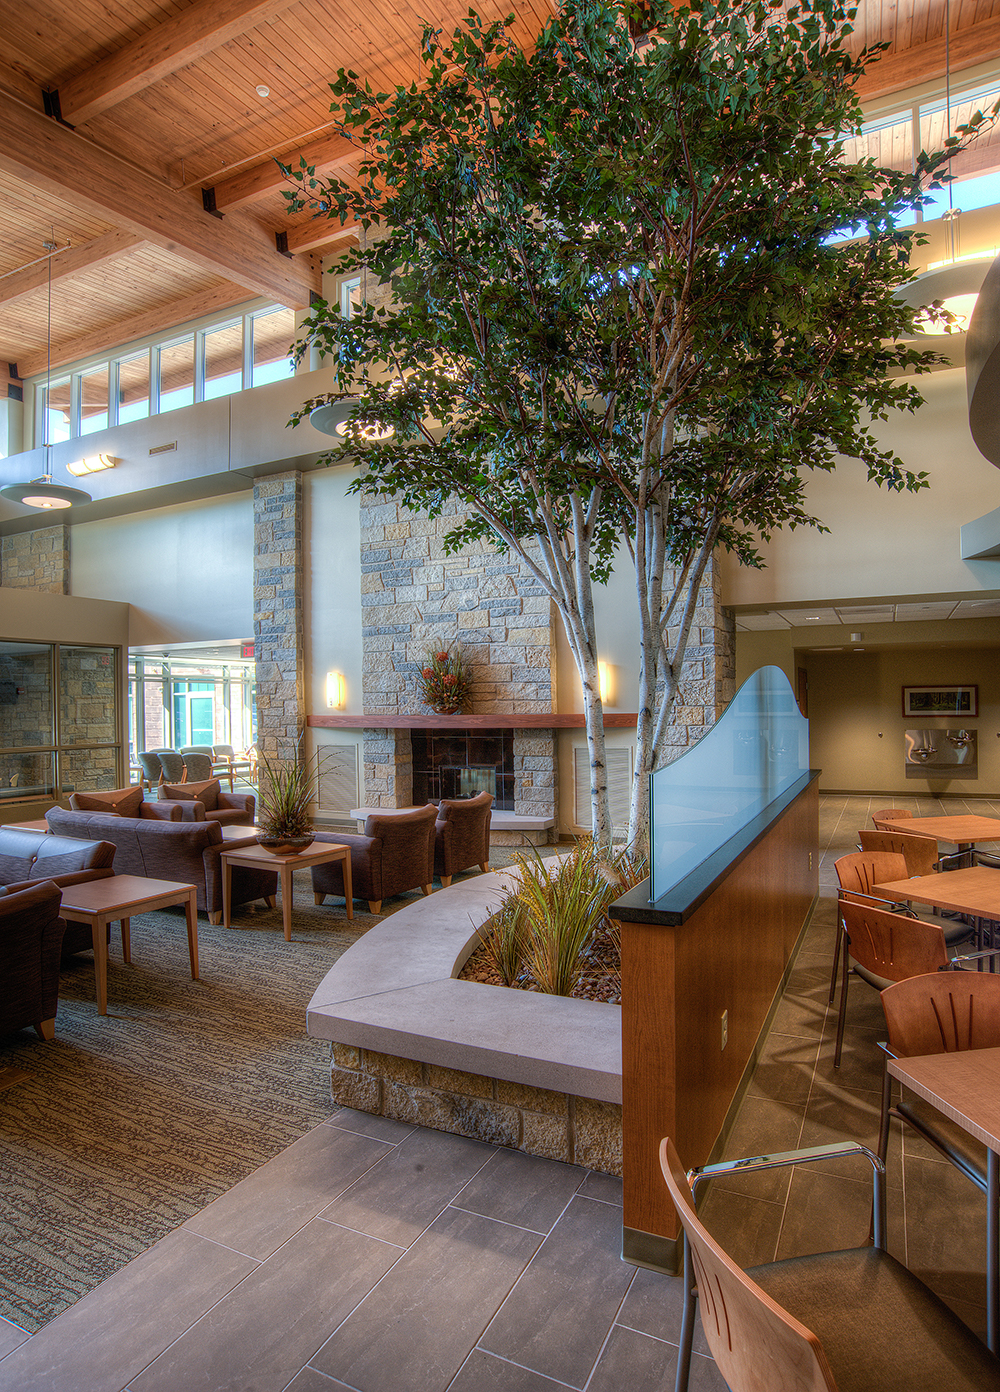 Camber sconces in a soothing, nature-themed lobby for warm hospital lighting design